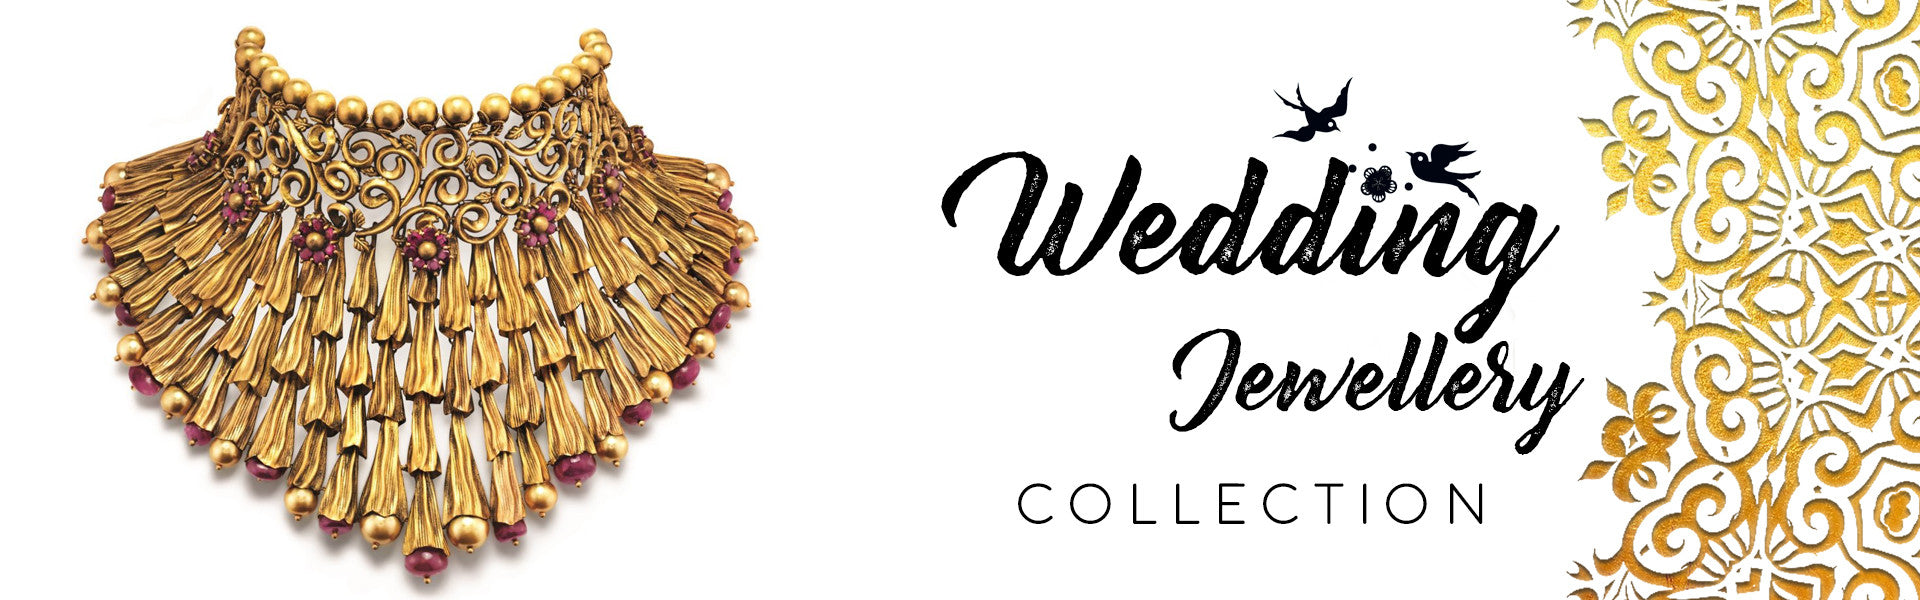 Wedding Jewellery Collection | Shop Online